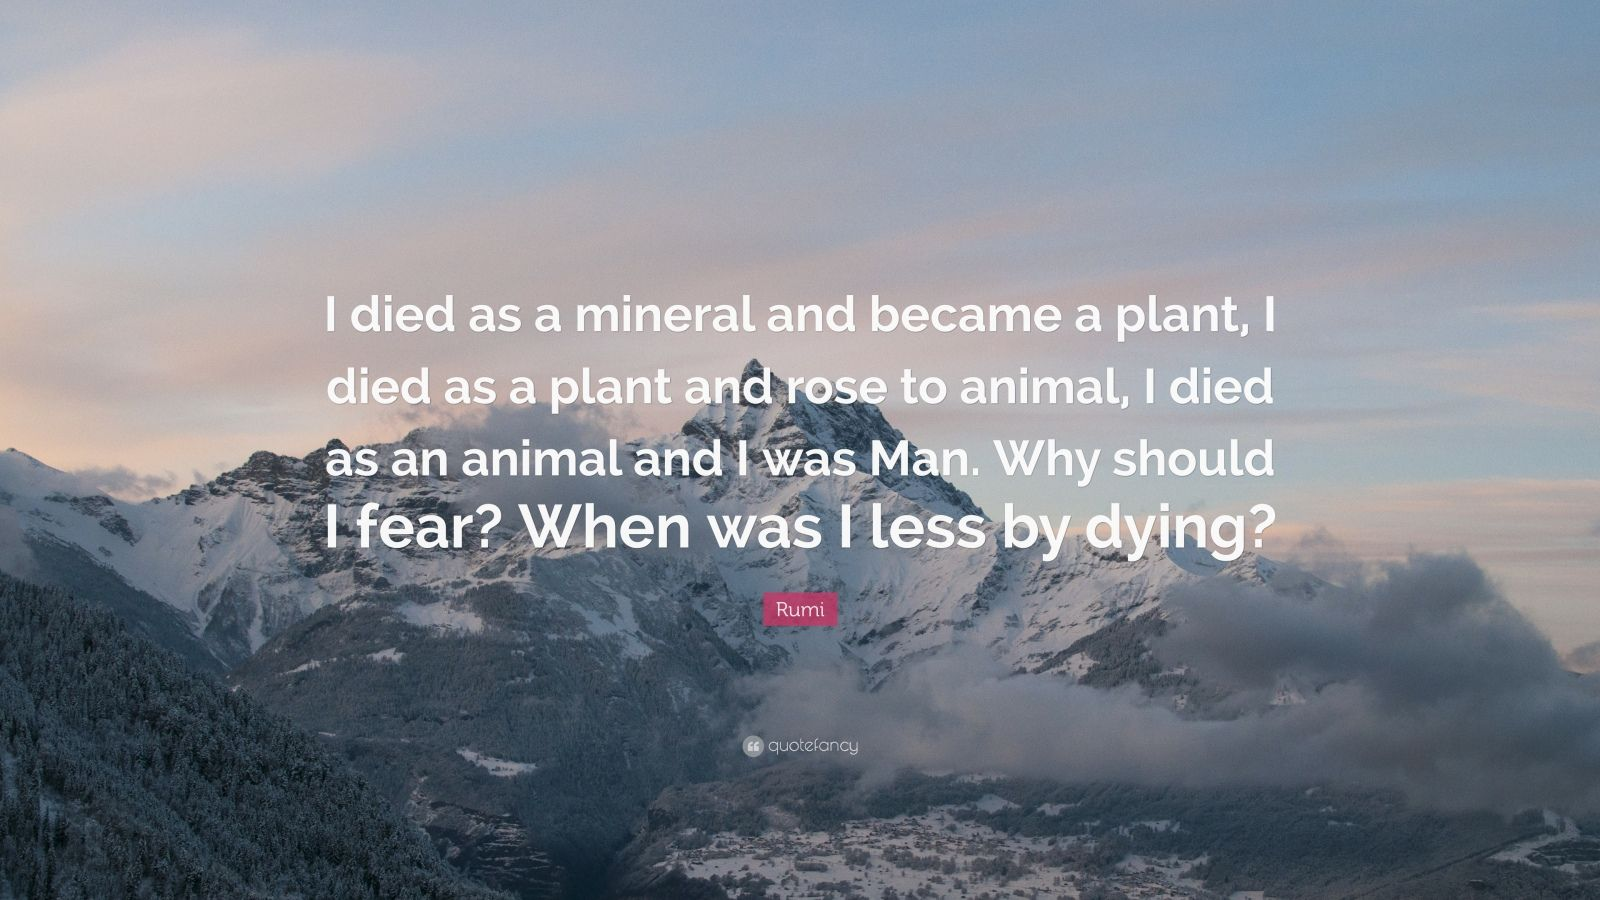 """Rumi Quote: """"I died as a mineral and became a plant, I died as a plant and rose to animal, I died as an animal and I was Man. Why should I fear? When was I less by dying?"""""""